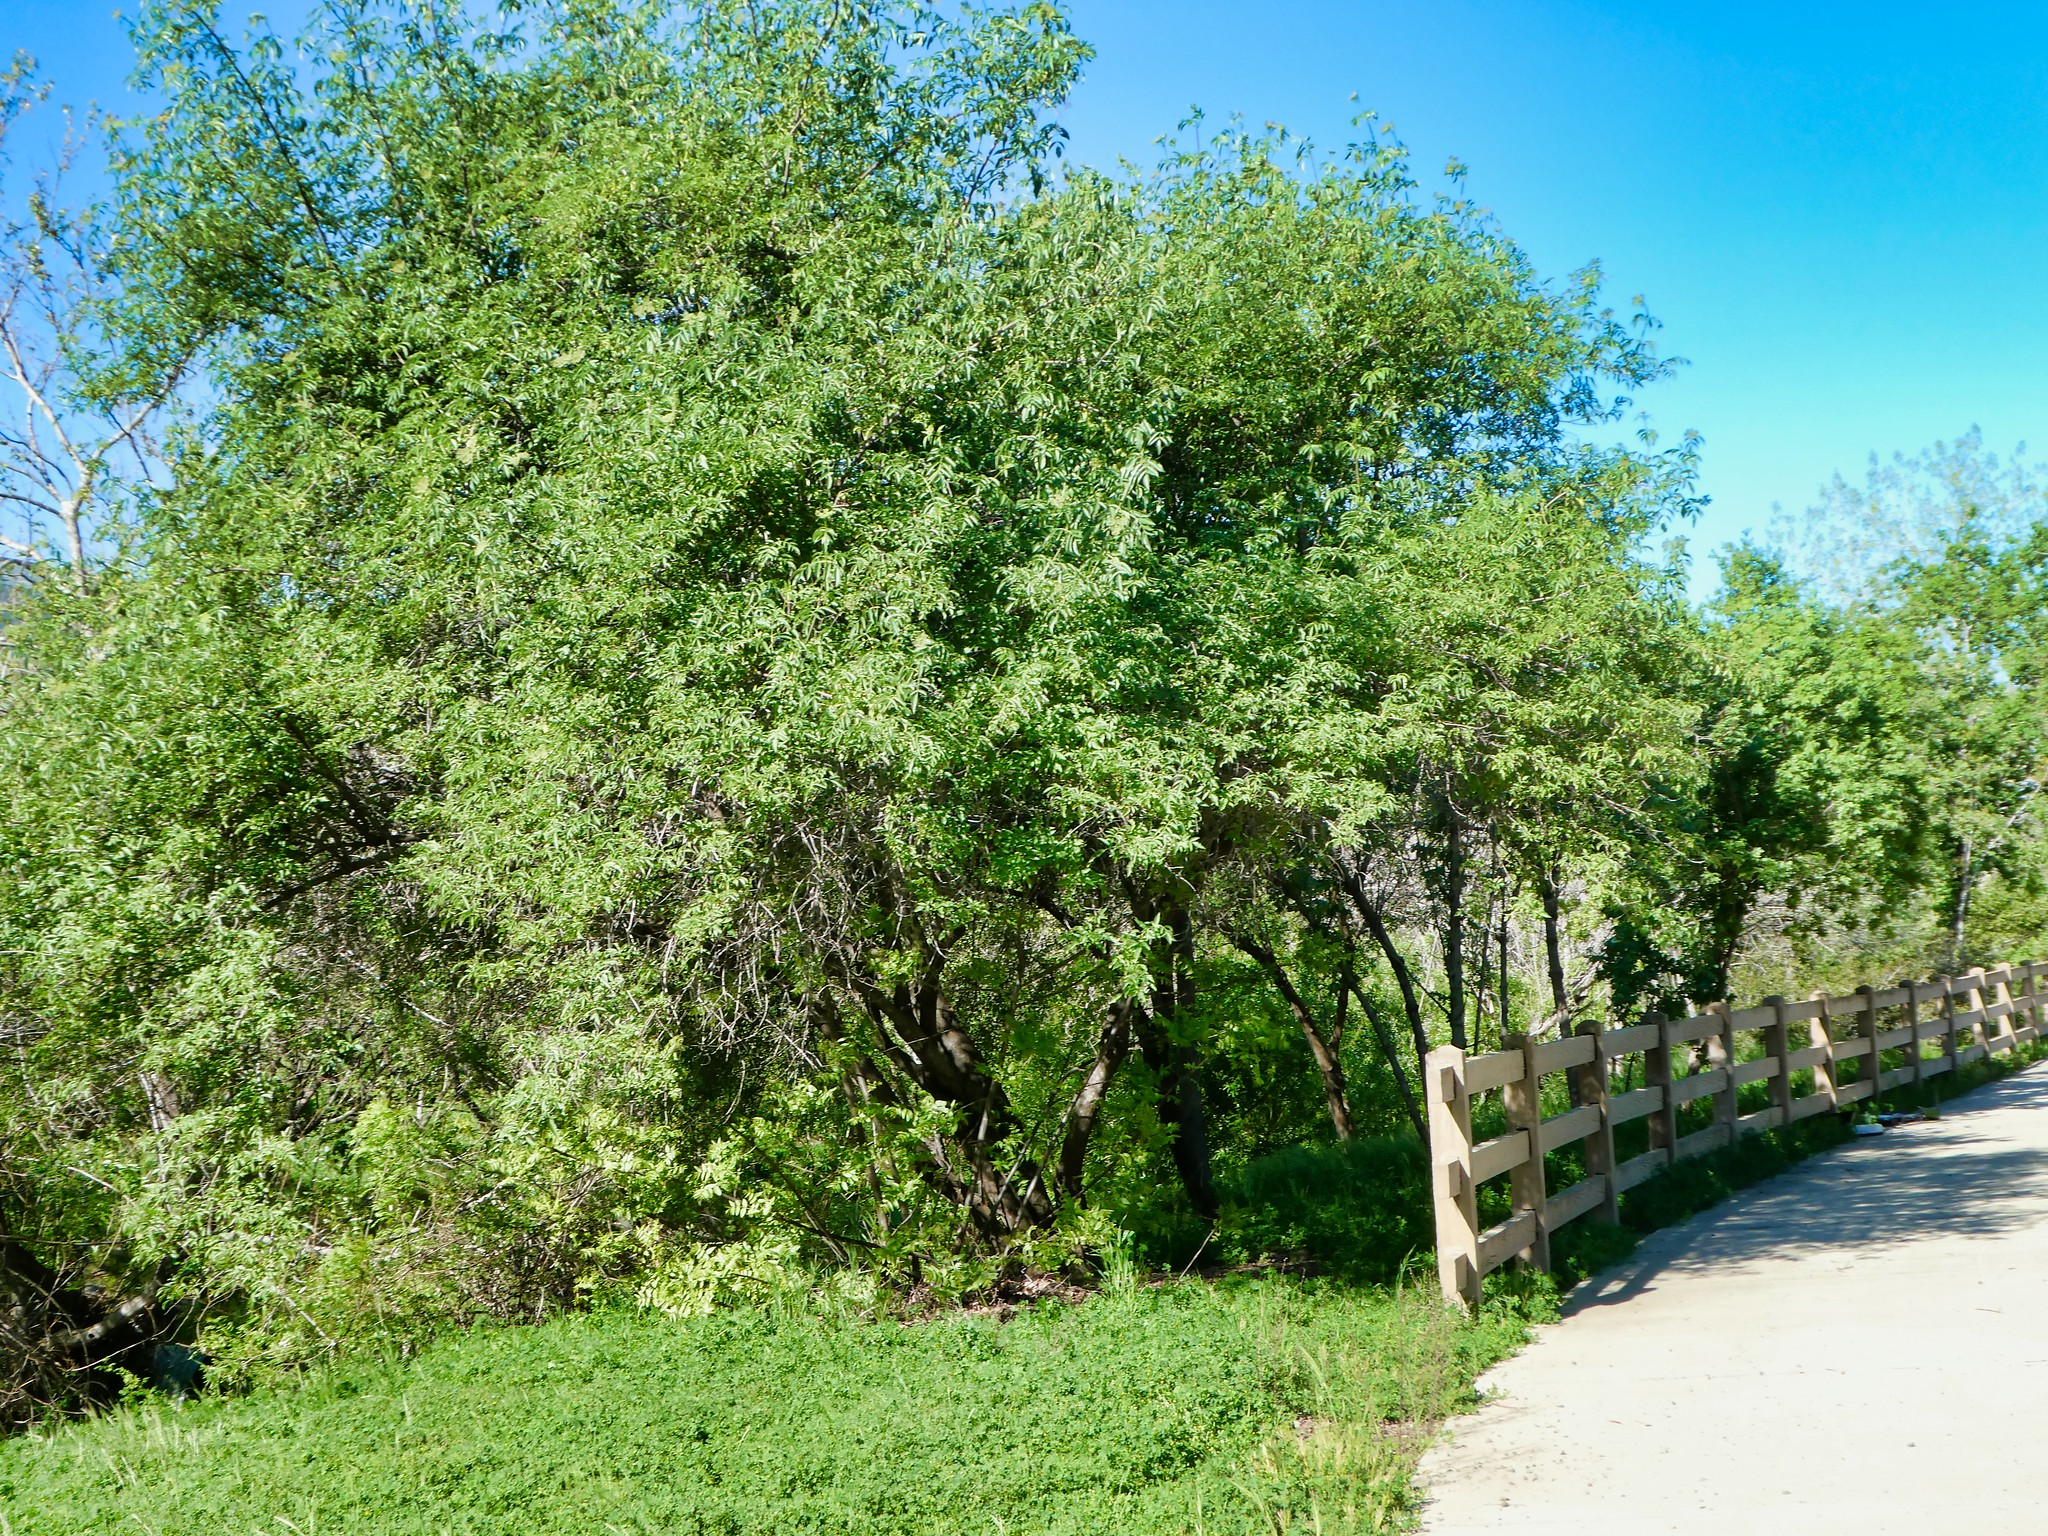 2019-04-09 - Outdoor Photography - Nature - Walking along the Catanzaro Trail, Part 2